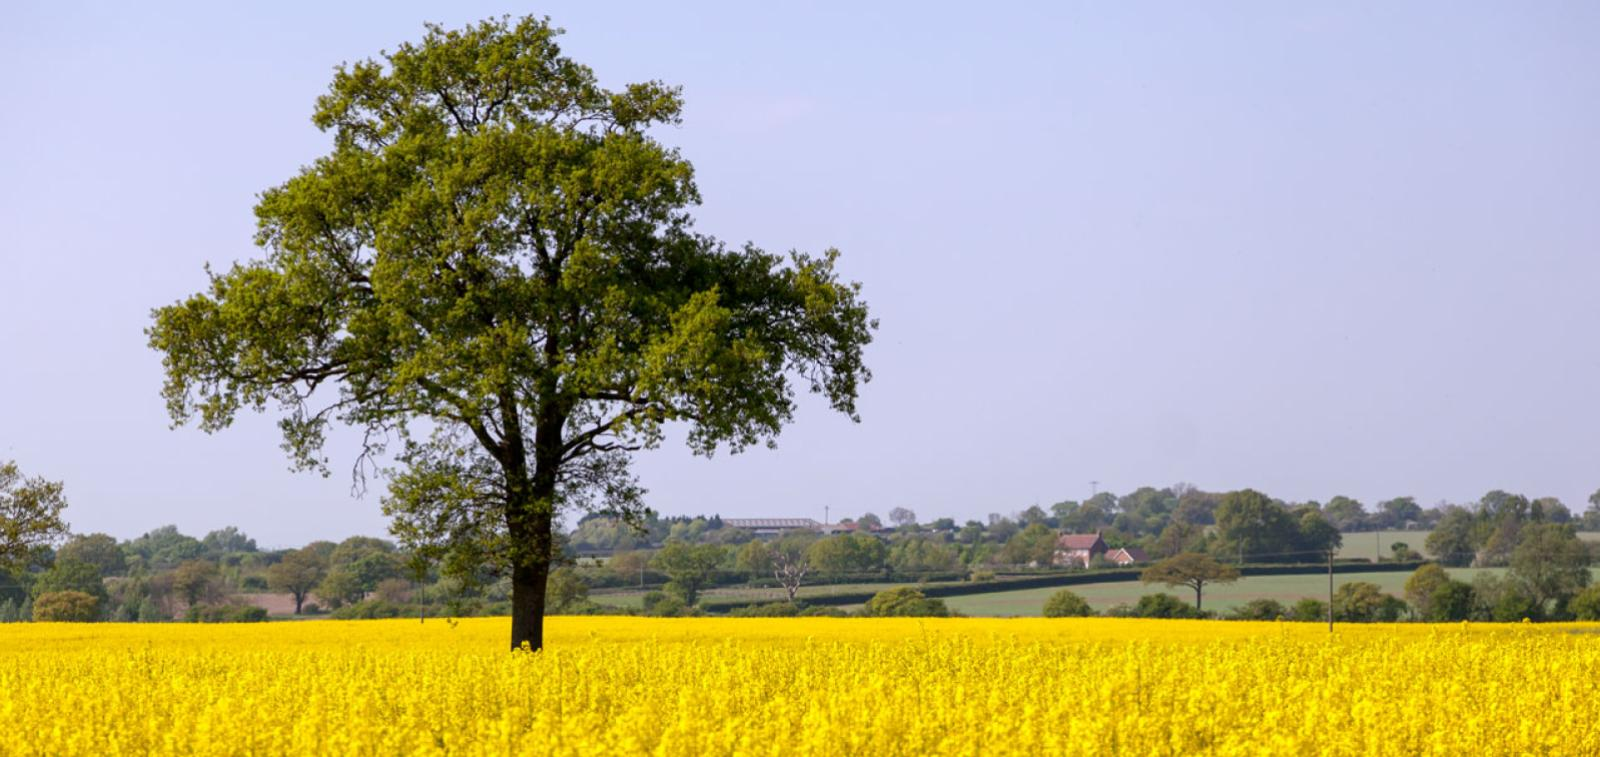 A tree in a field in the Essex countryside.